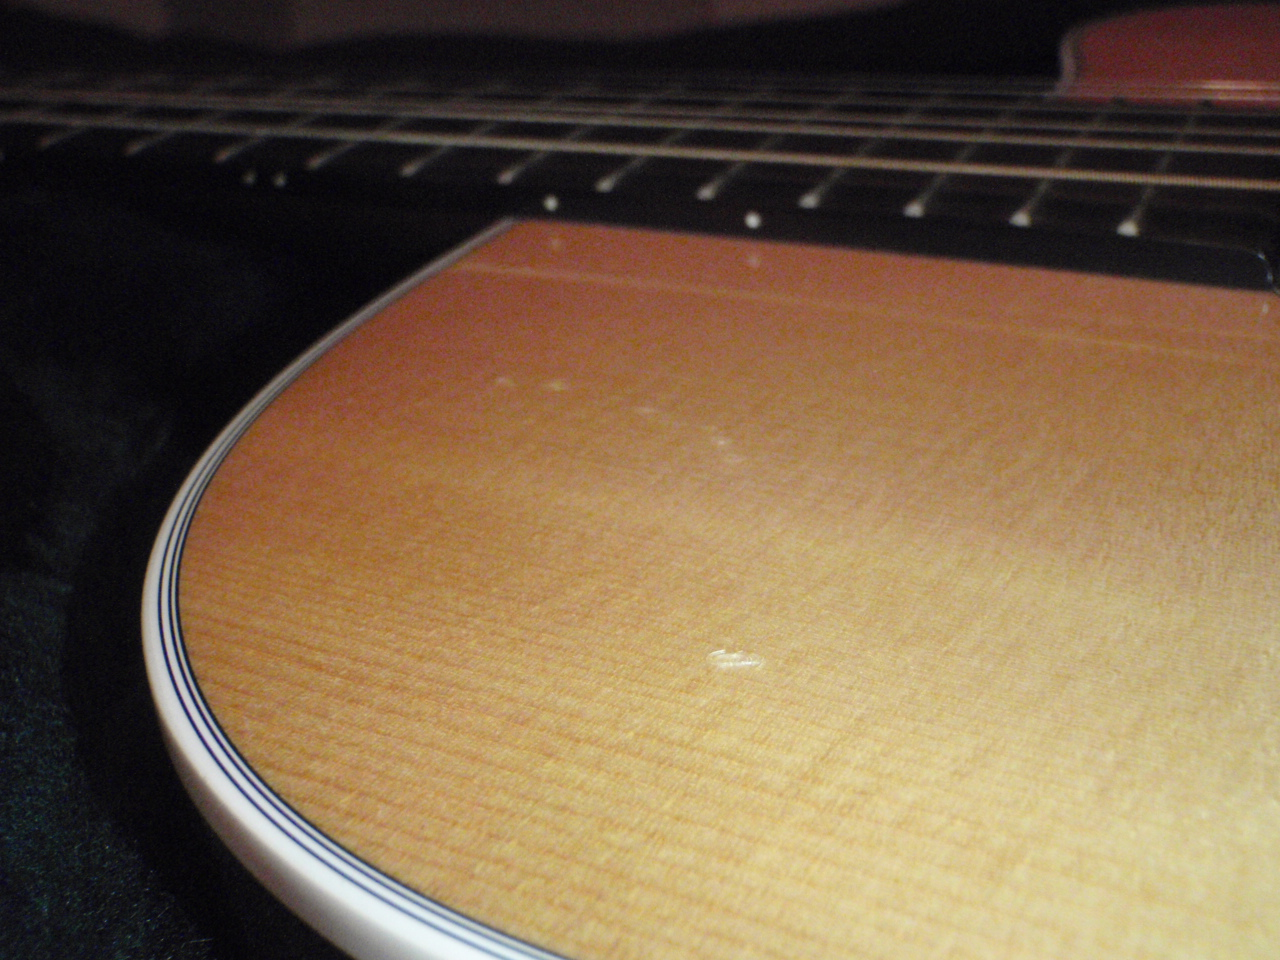 My first dings - repairable? - The Unofficial Martin Guitar